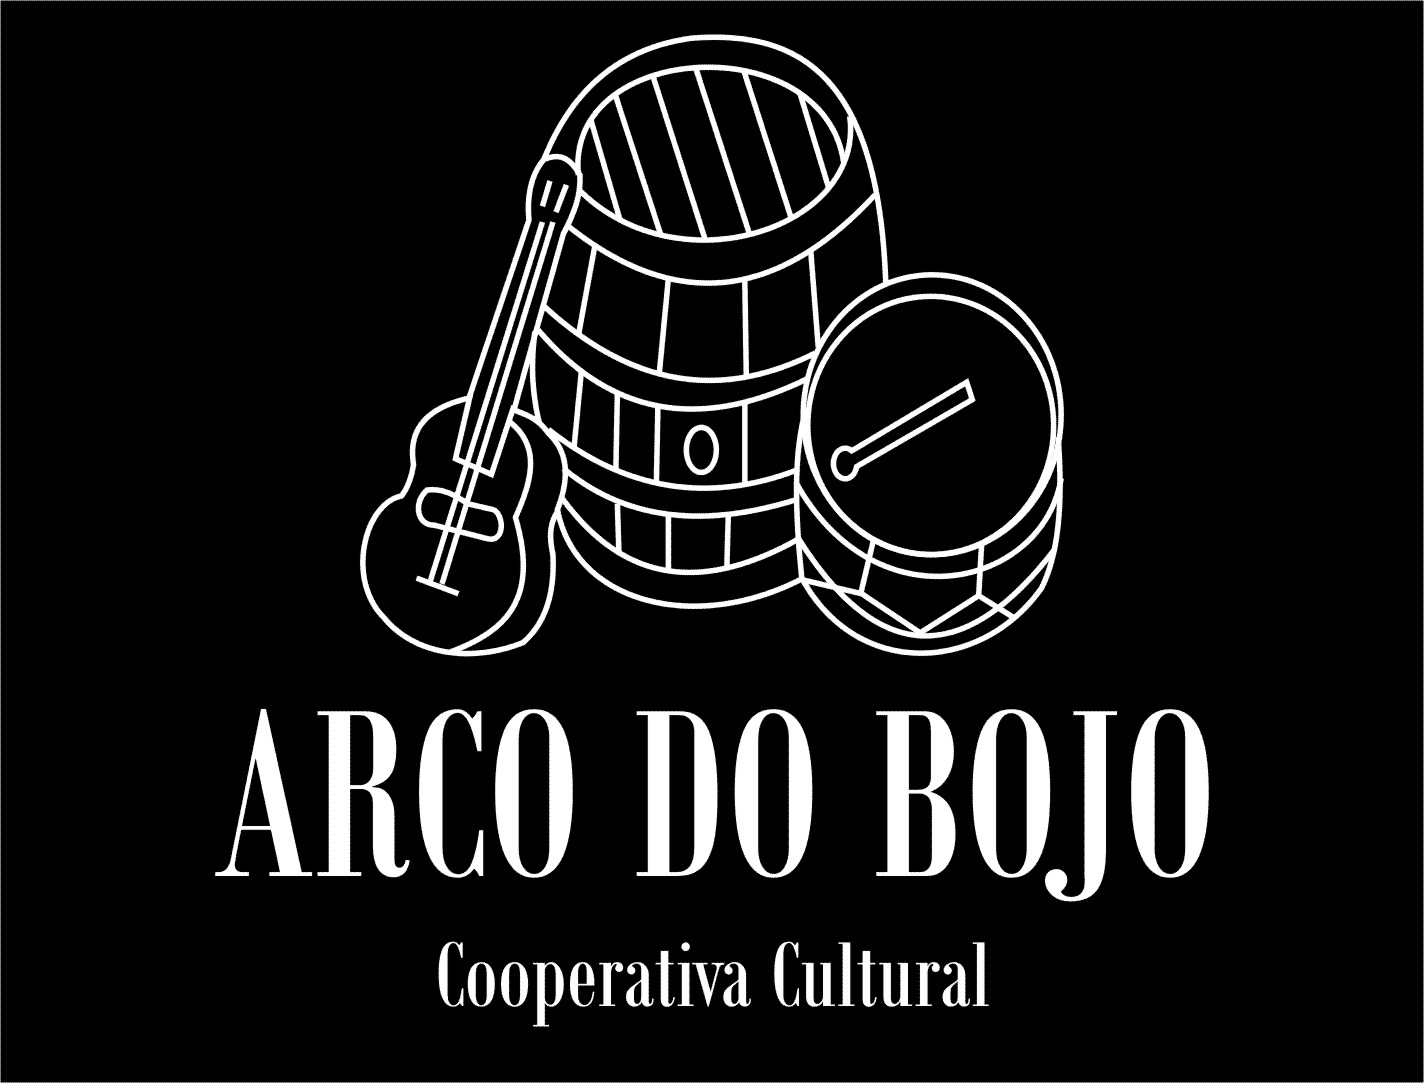 ARCO DO BOJO LOGO